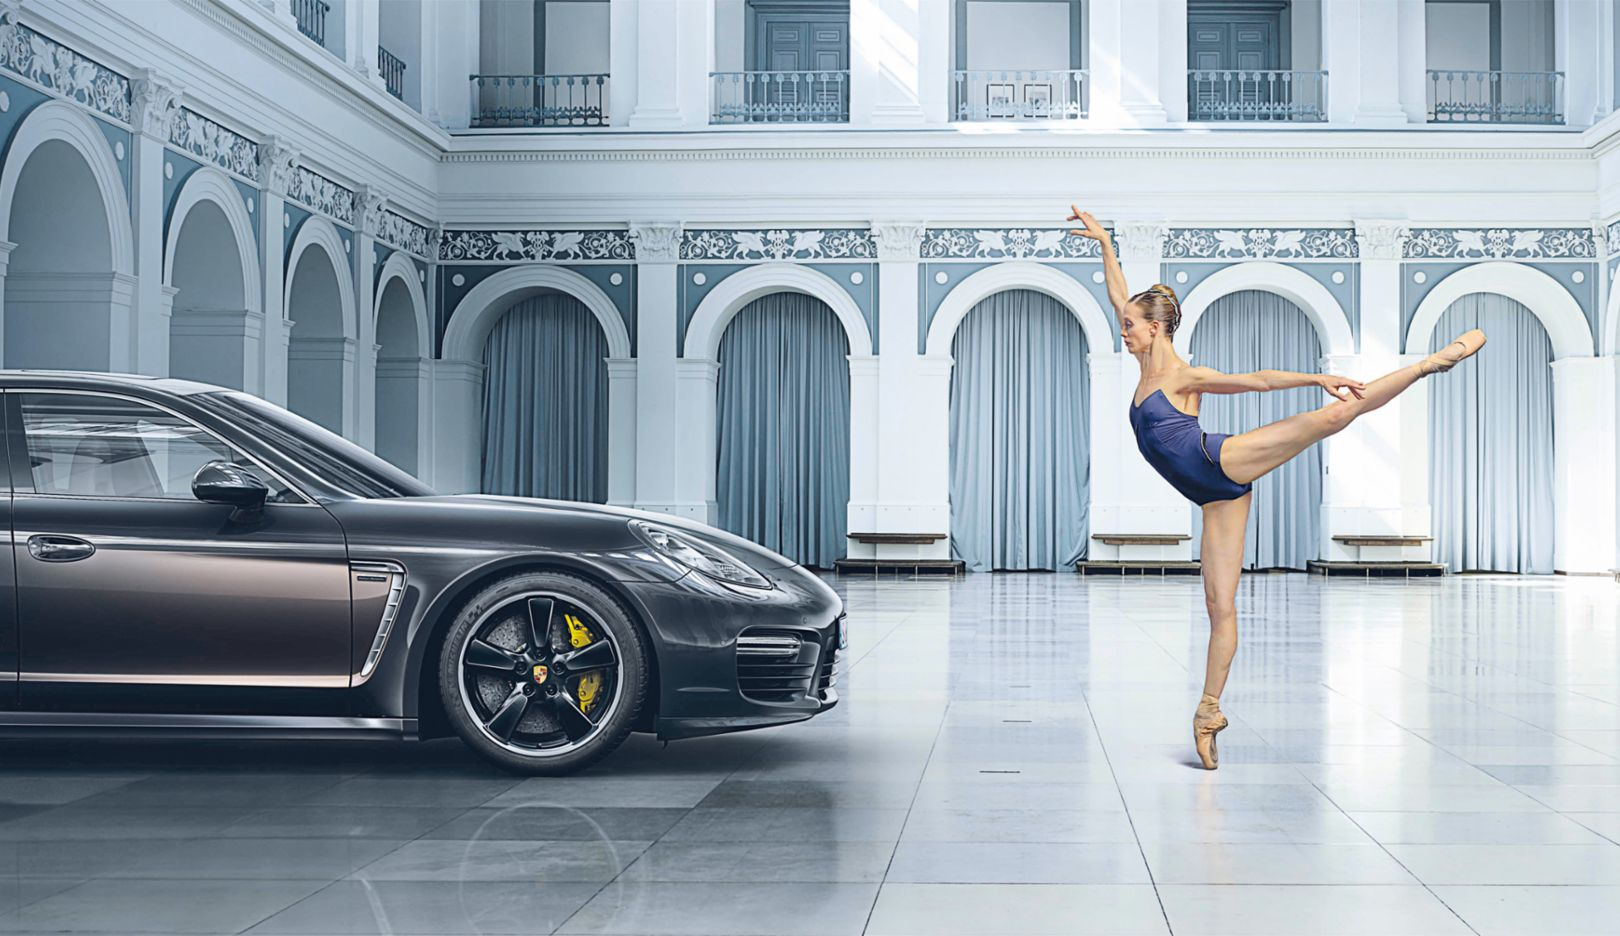 Advert, Ballerina Alicia Amatriain, Panamera Turbo S Exclusive Series, Porsche AG